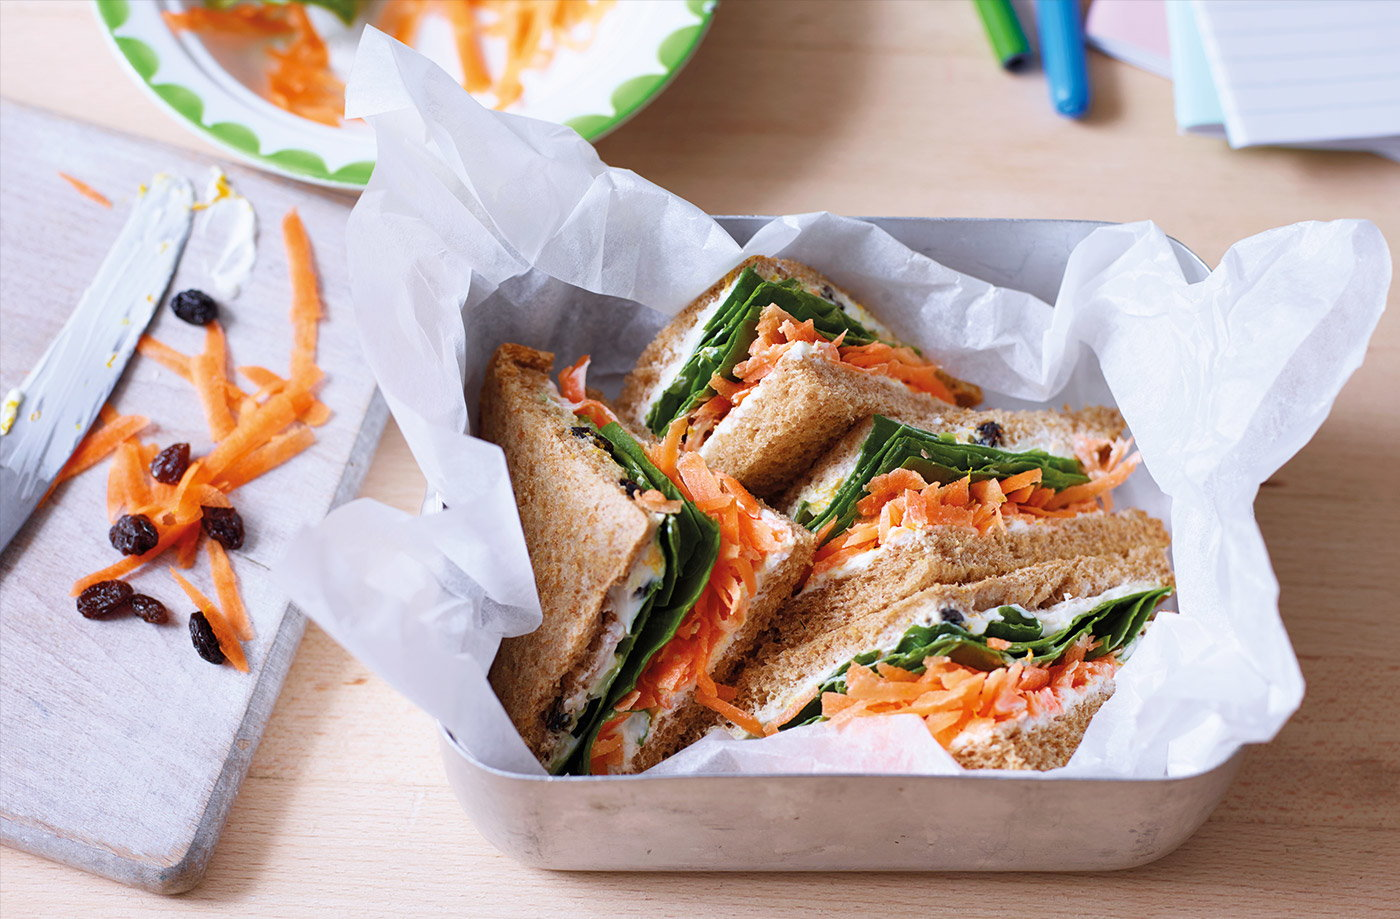 Carrot, raisin and cream cheese sandwich recipe